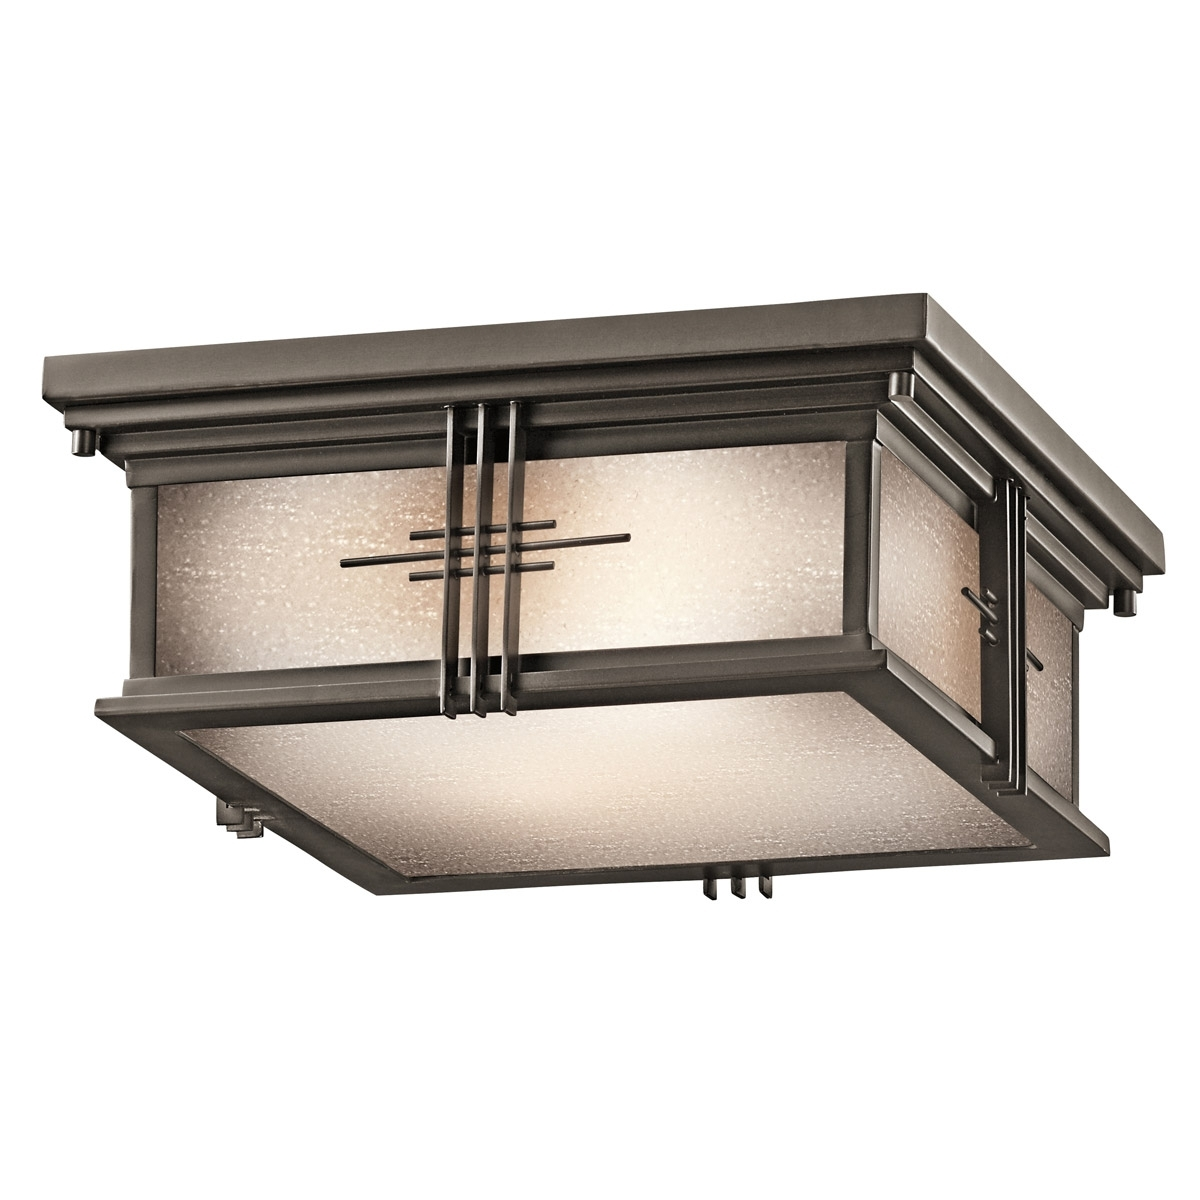 Widely Used Kichler Outdoor Ceiling Lights Intended For 49164oz Portman Square Outdoor Flush Mount Ceiling Fixture (View 15 of 20)